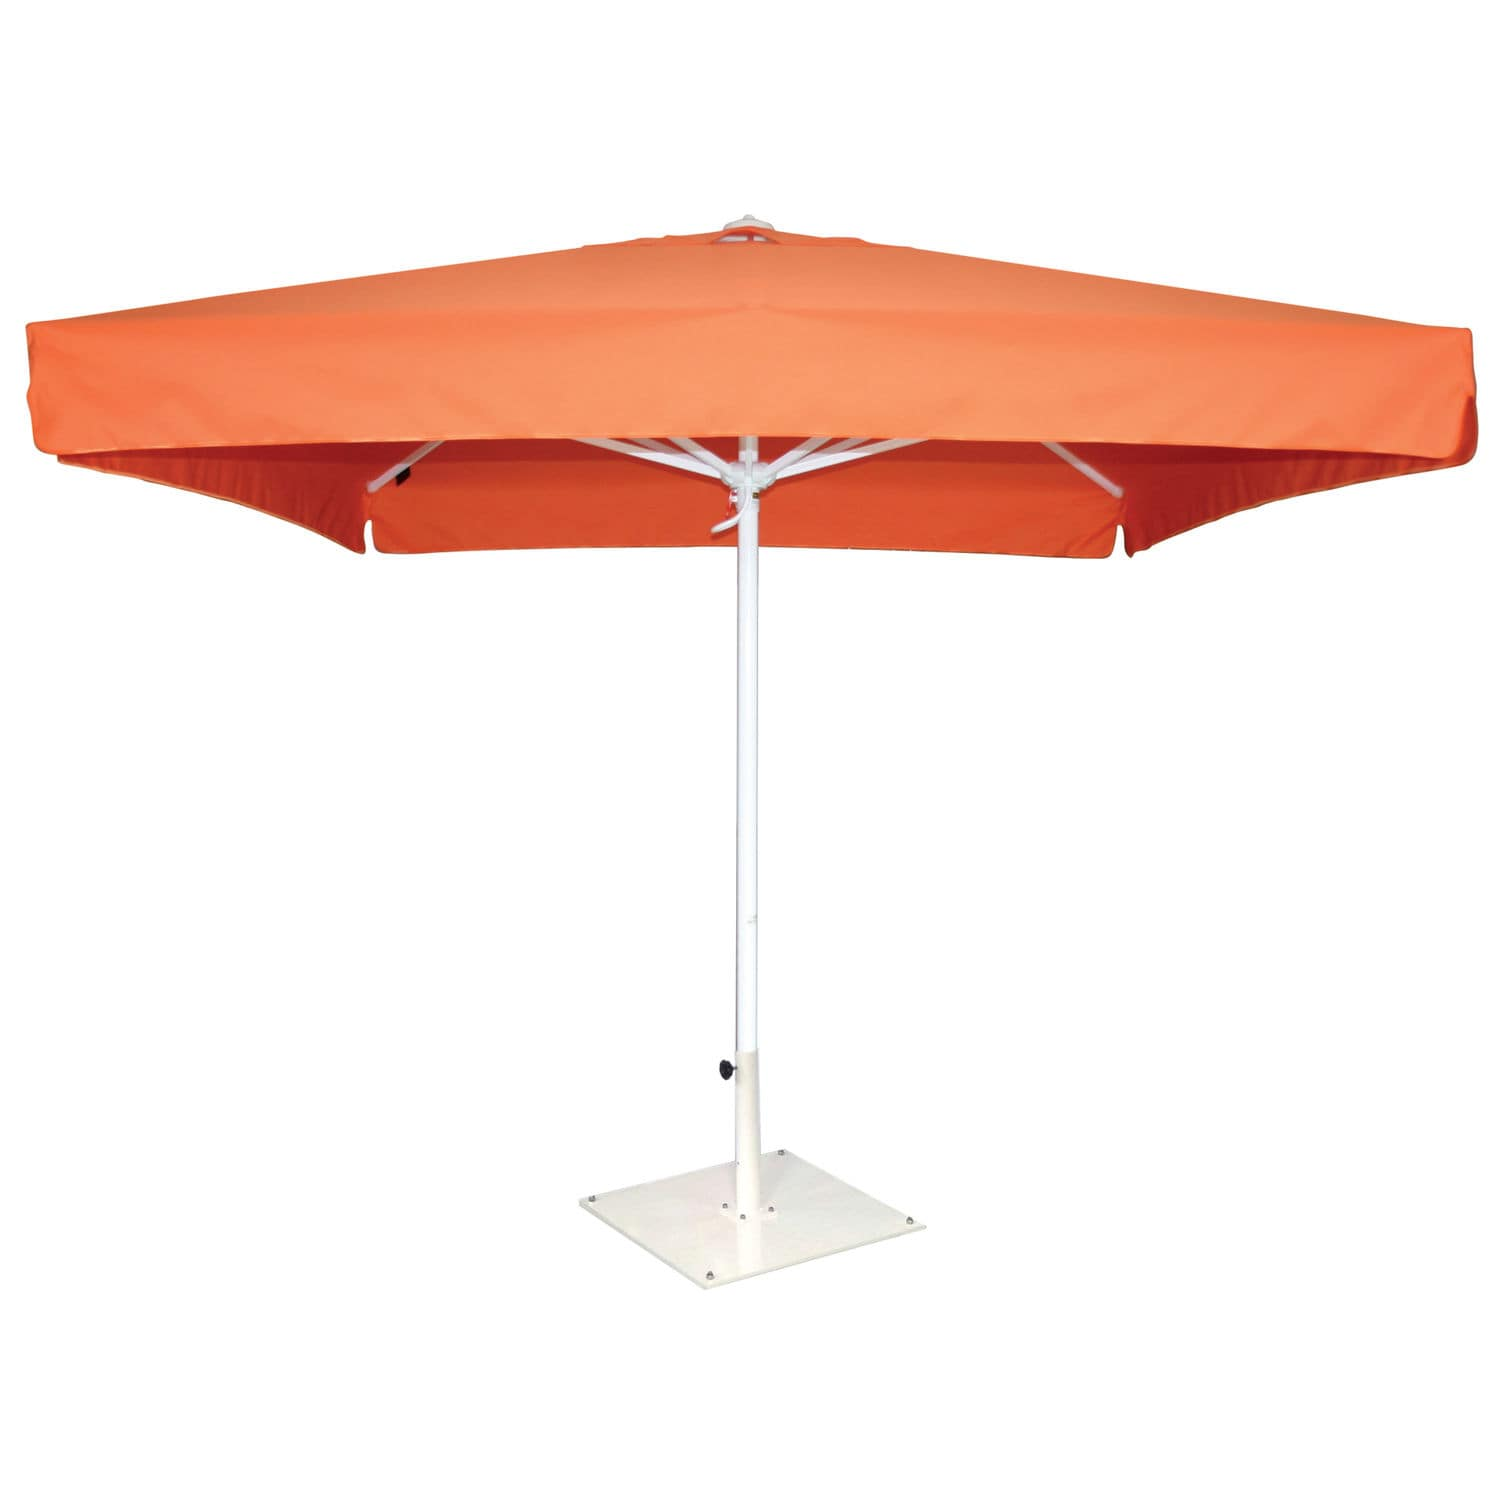 Commercial Patio Umbrella Aluminum Canvas Minisoco V2